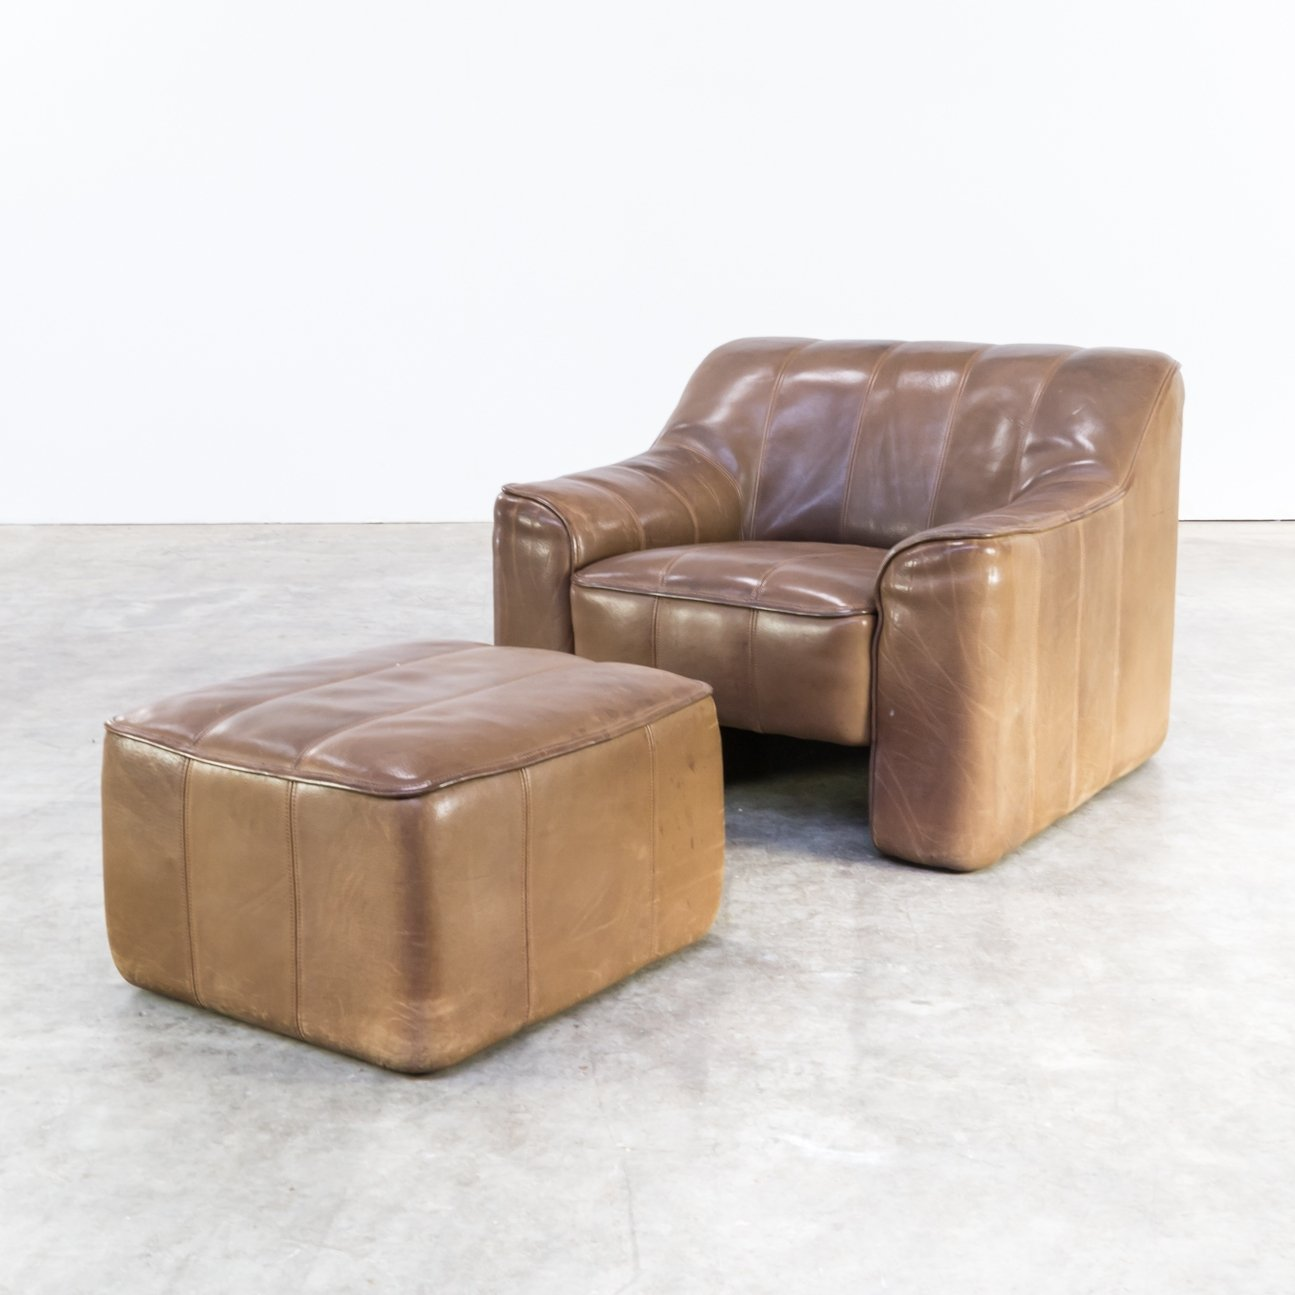 Charming De Sede DS44 Chair U0026 Ottoman With Adjustable Seating, 1970s